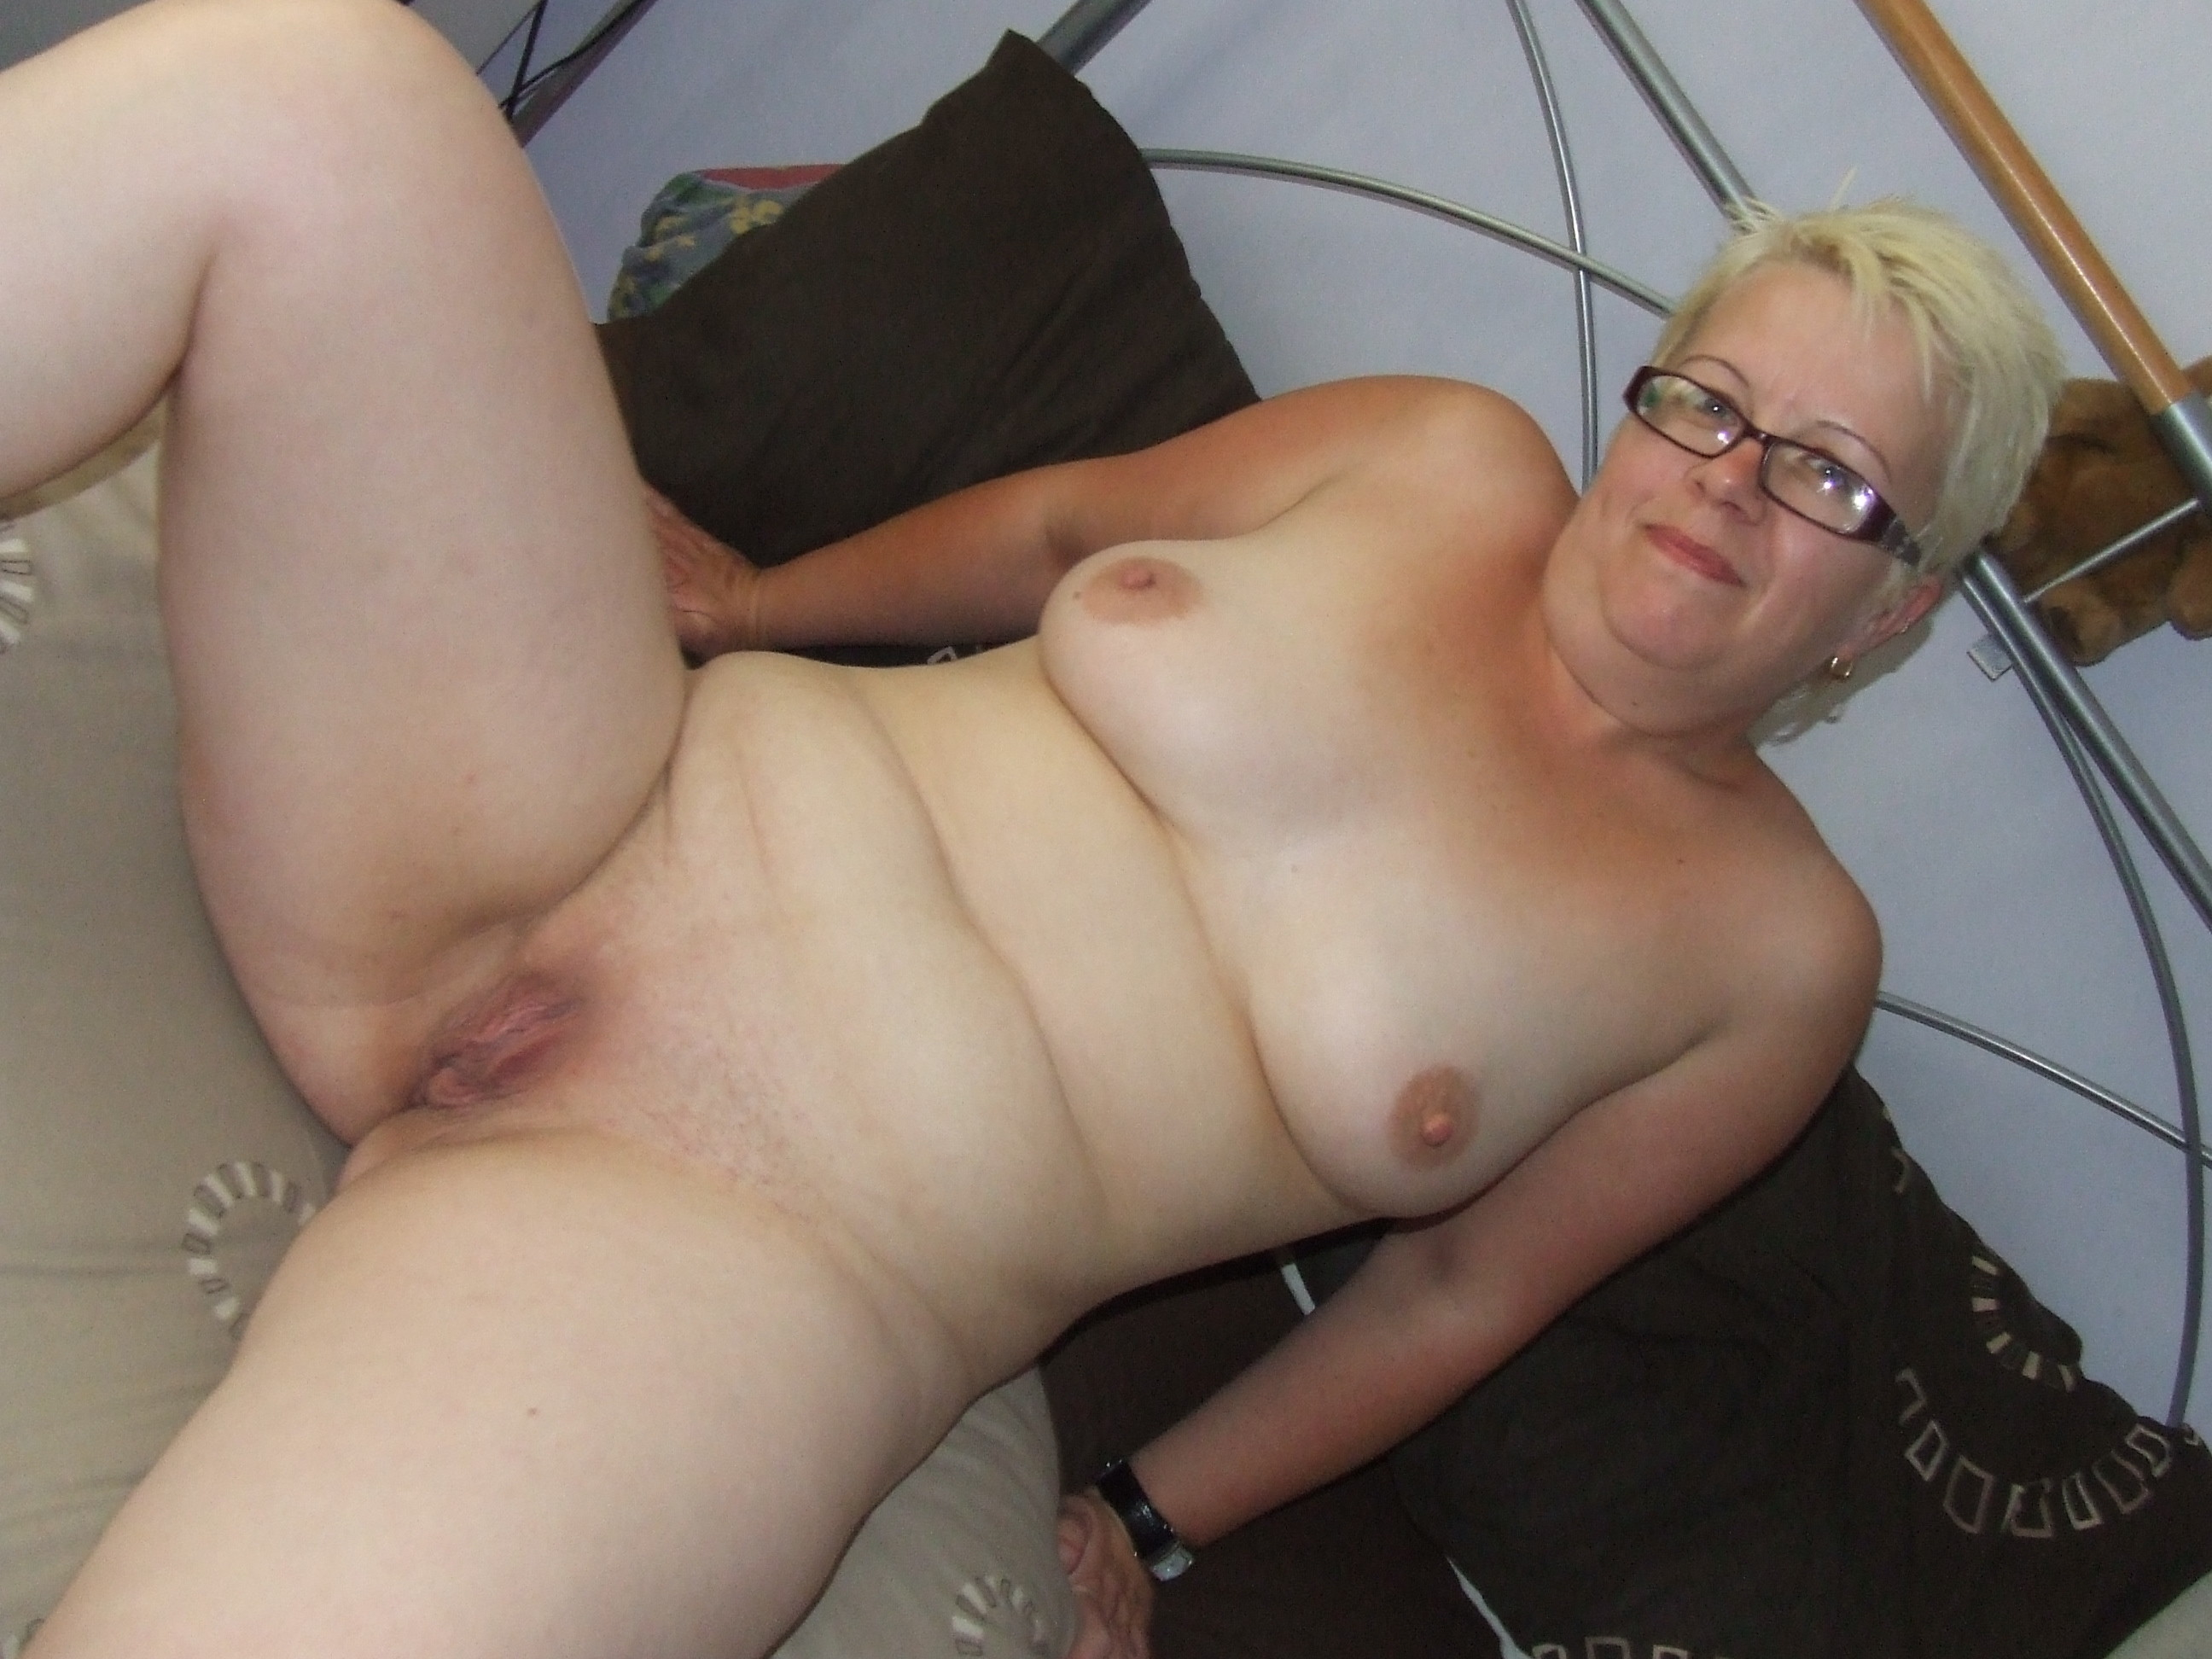 Chubby wife bound and first time anal plug 9